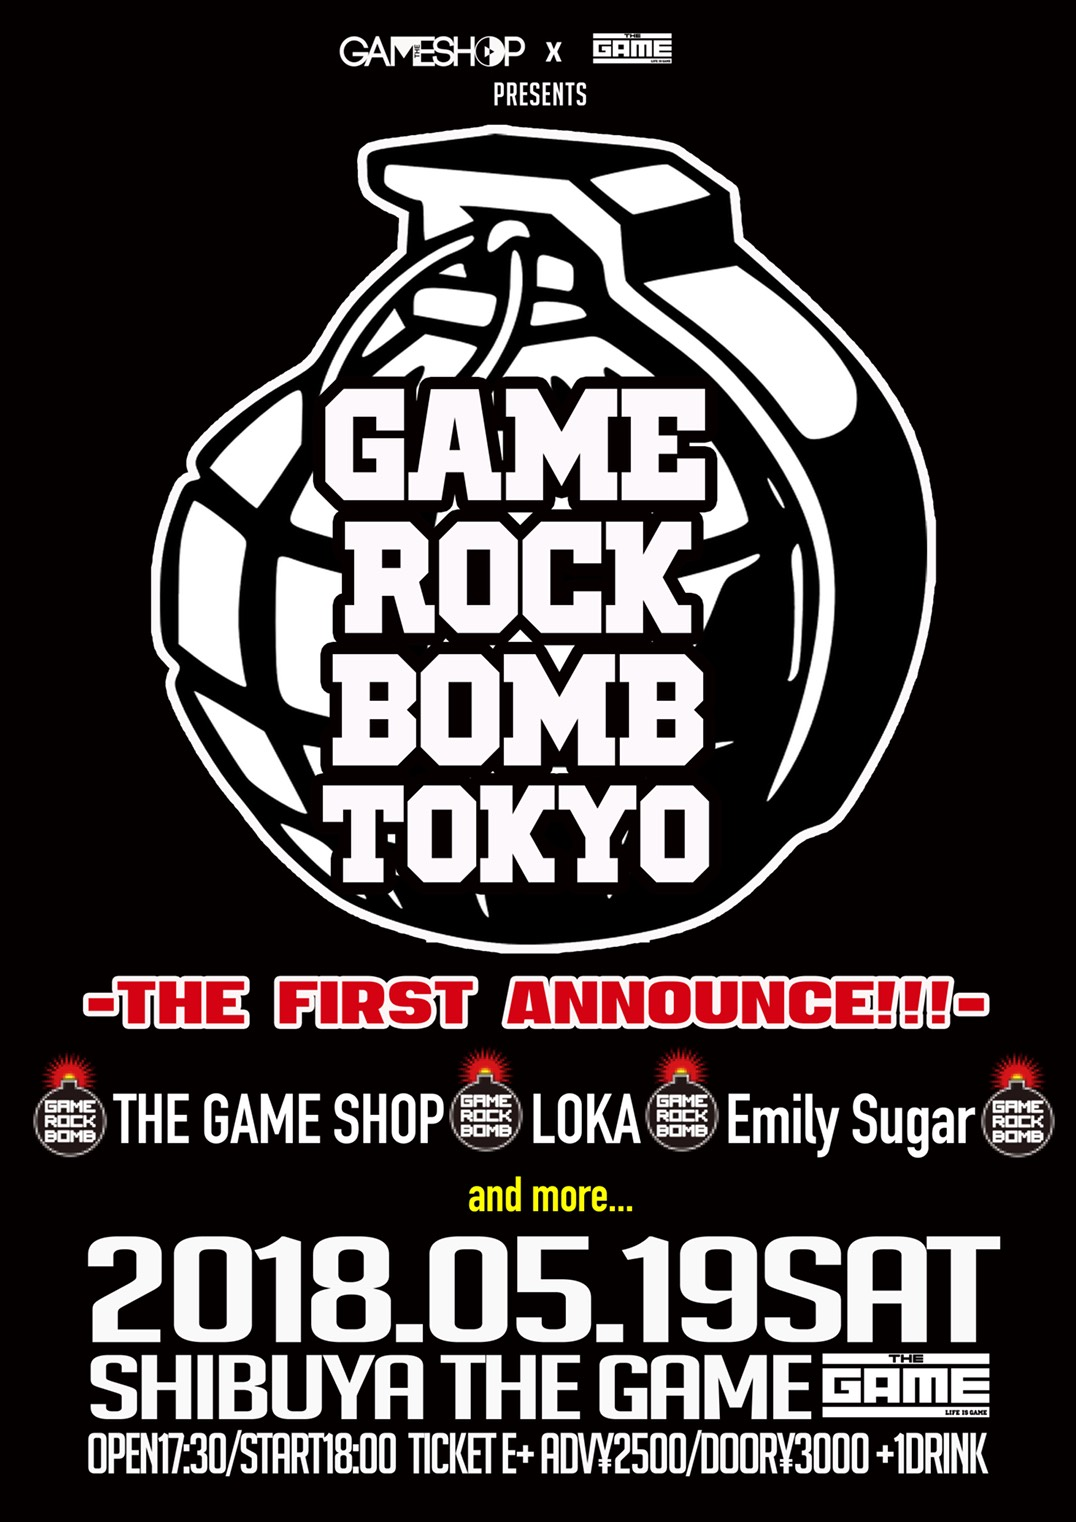 【Emily Sugar】2018.05.19 渋谷THE GAME『AME ROCK BOMB TOKY』